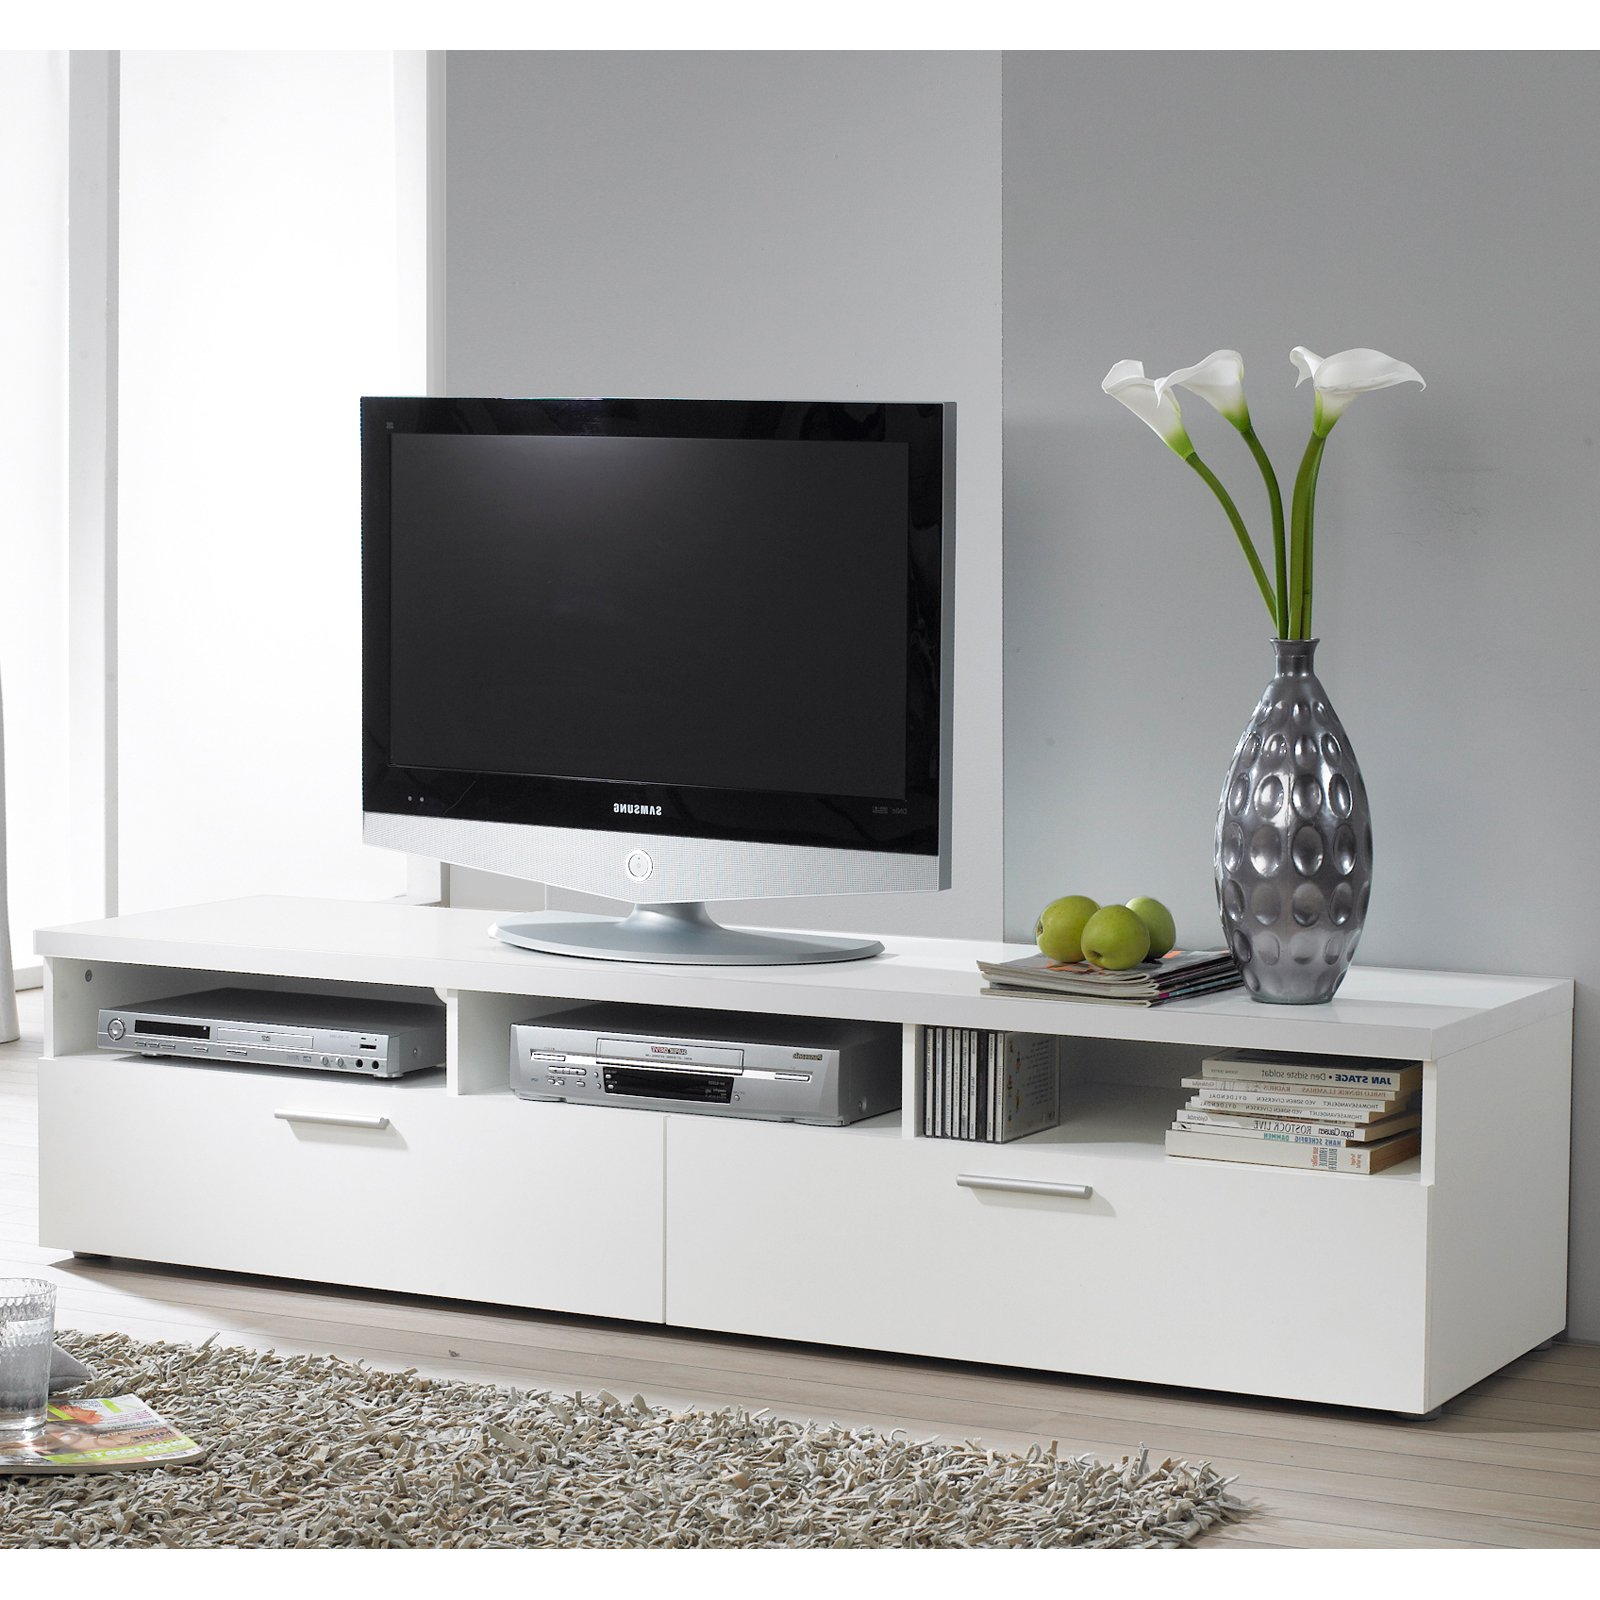 Recent Hayward Tv Stand – Walmart With Fancy Tv Stands (View 8 of 20)